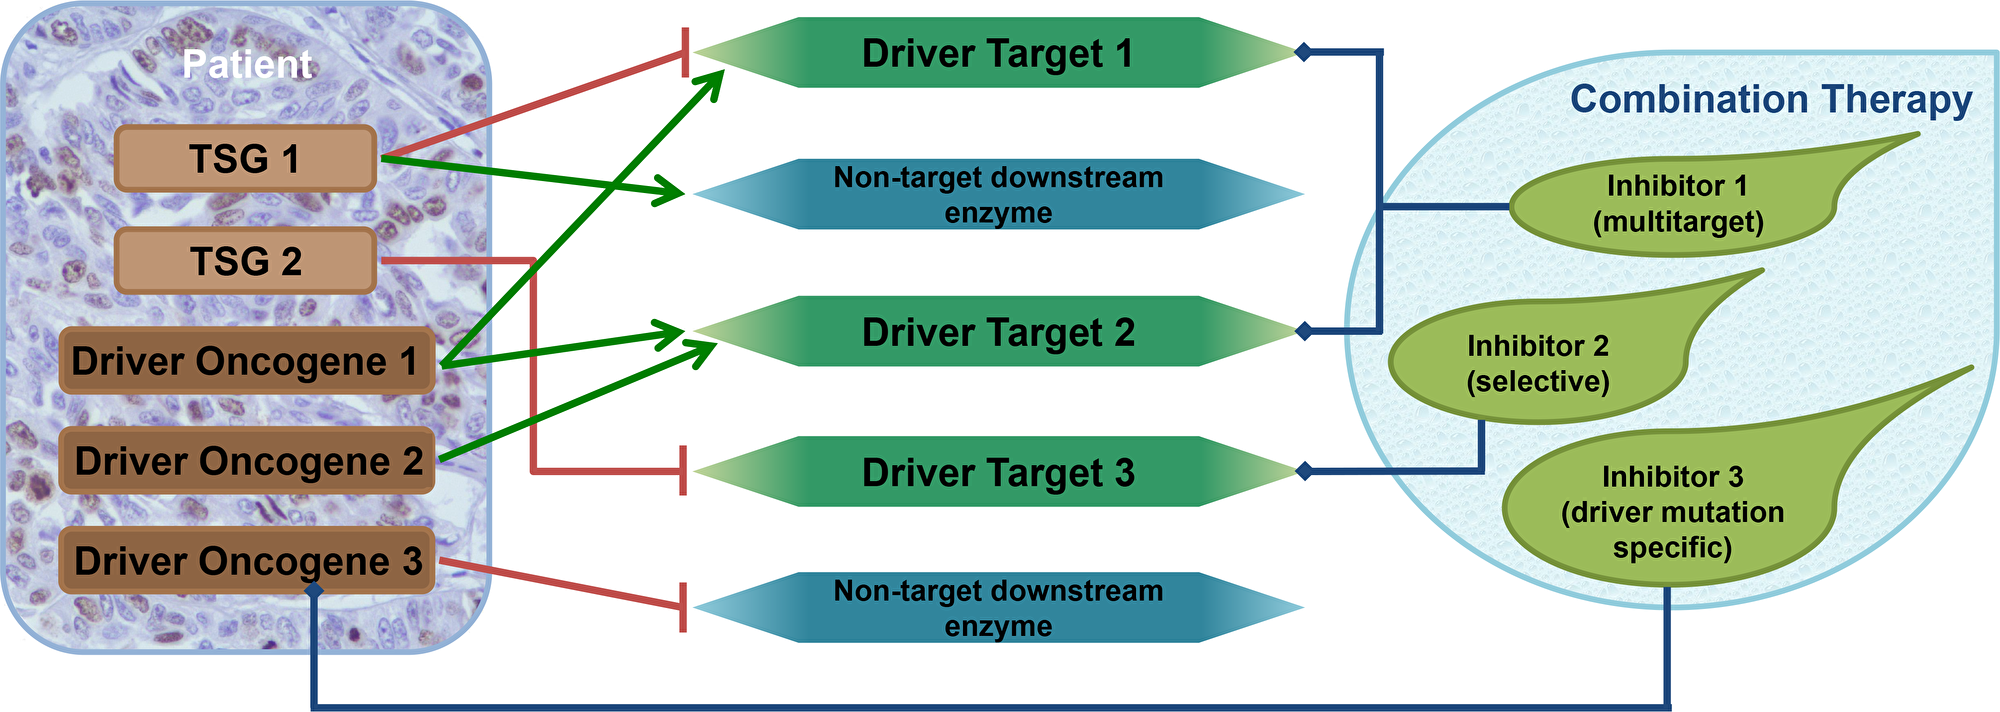 Combination therapy design using the driver gene concept.